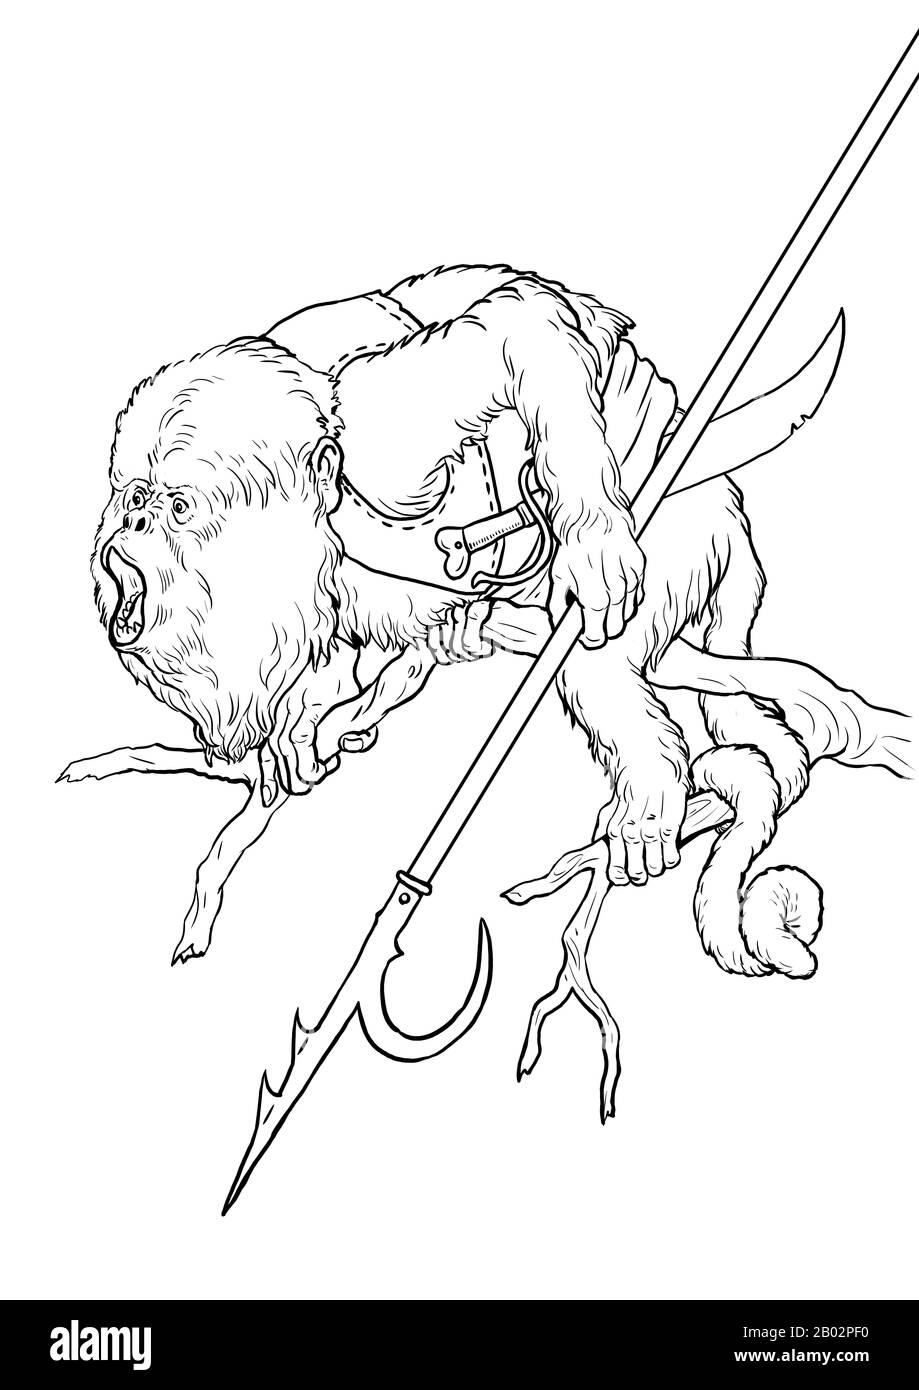 Howler Monkey Pirate Coloring Page Funny Outline Clipart Illustration Monkey And Apes Pirates Coloring Sheet Stock Photo Alamy